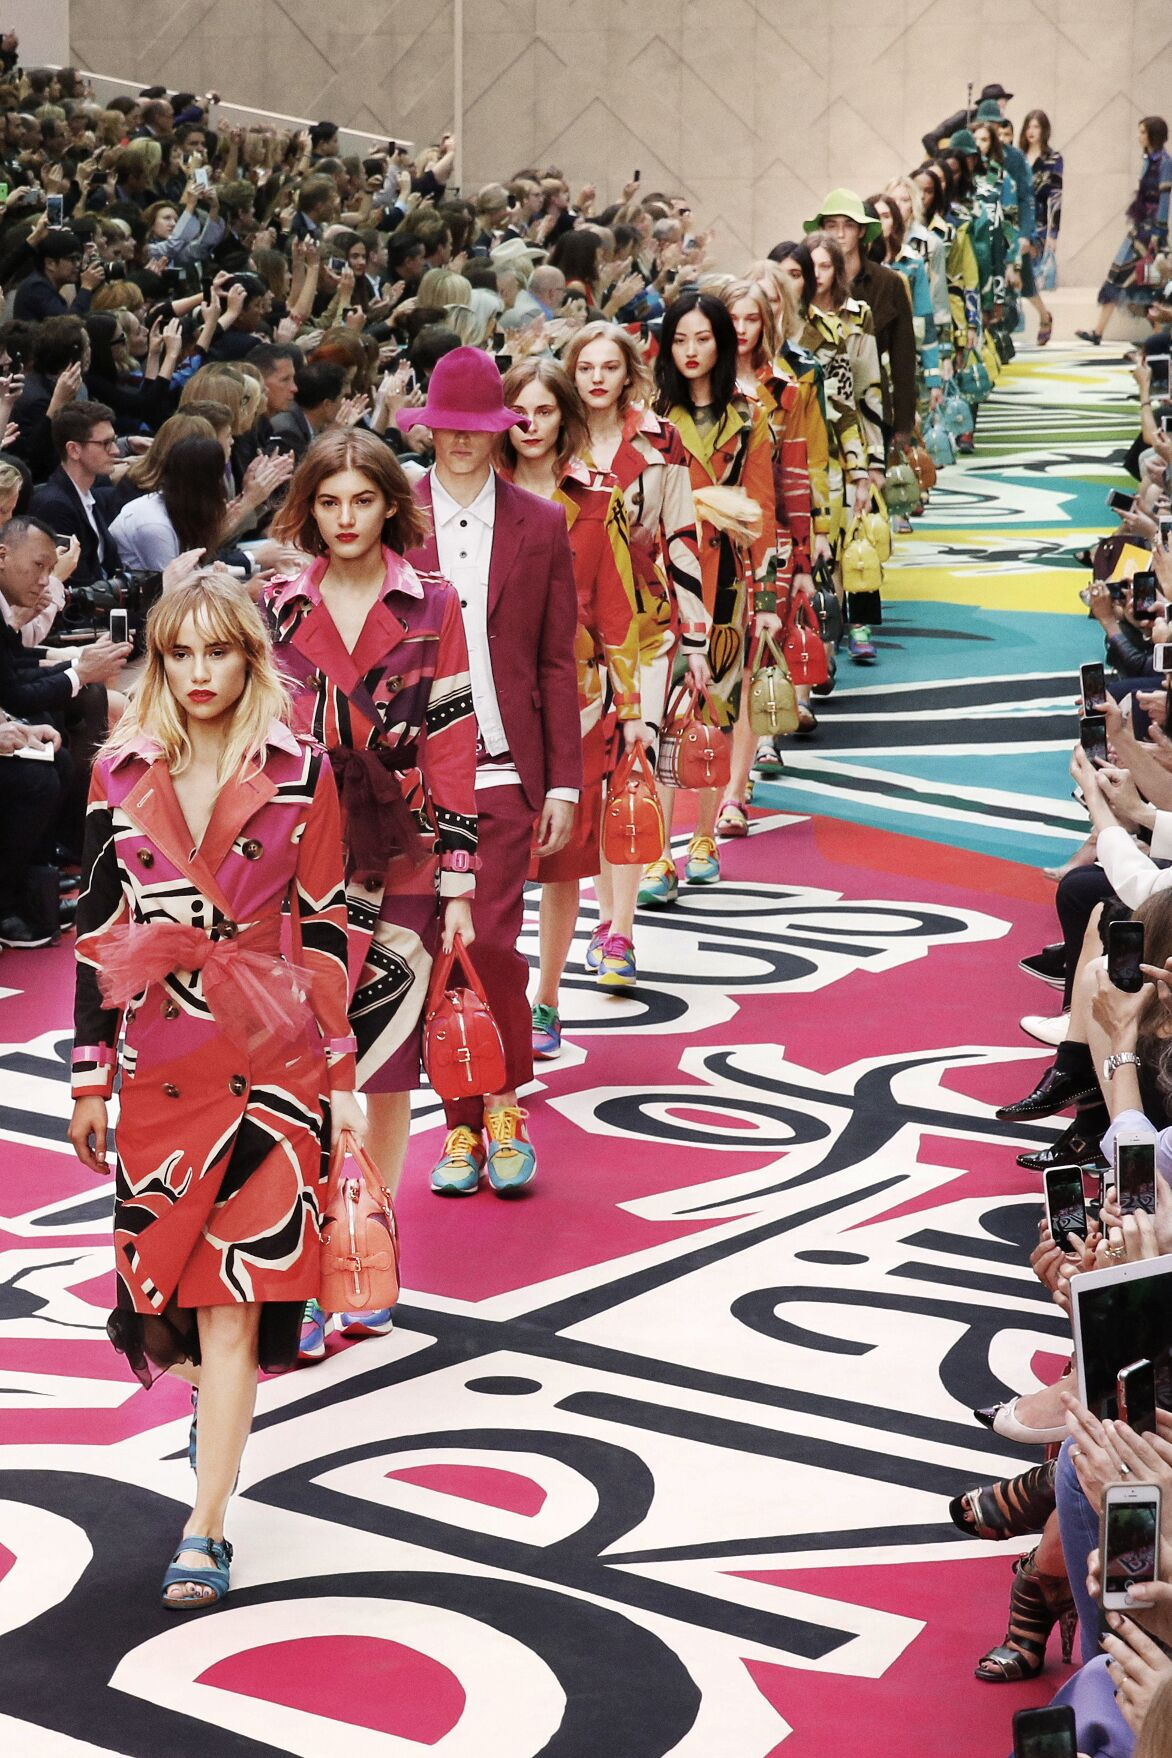 Finale SS 2015 Burberry Prorsum Womenswear Fashion Show